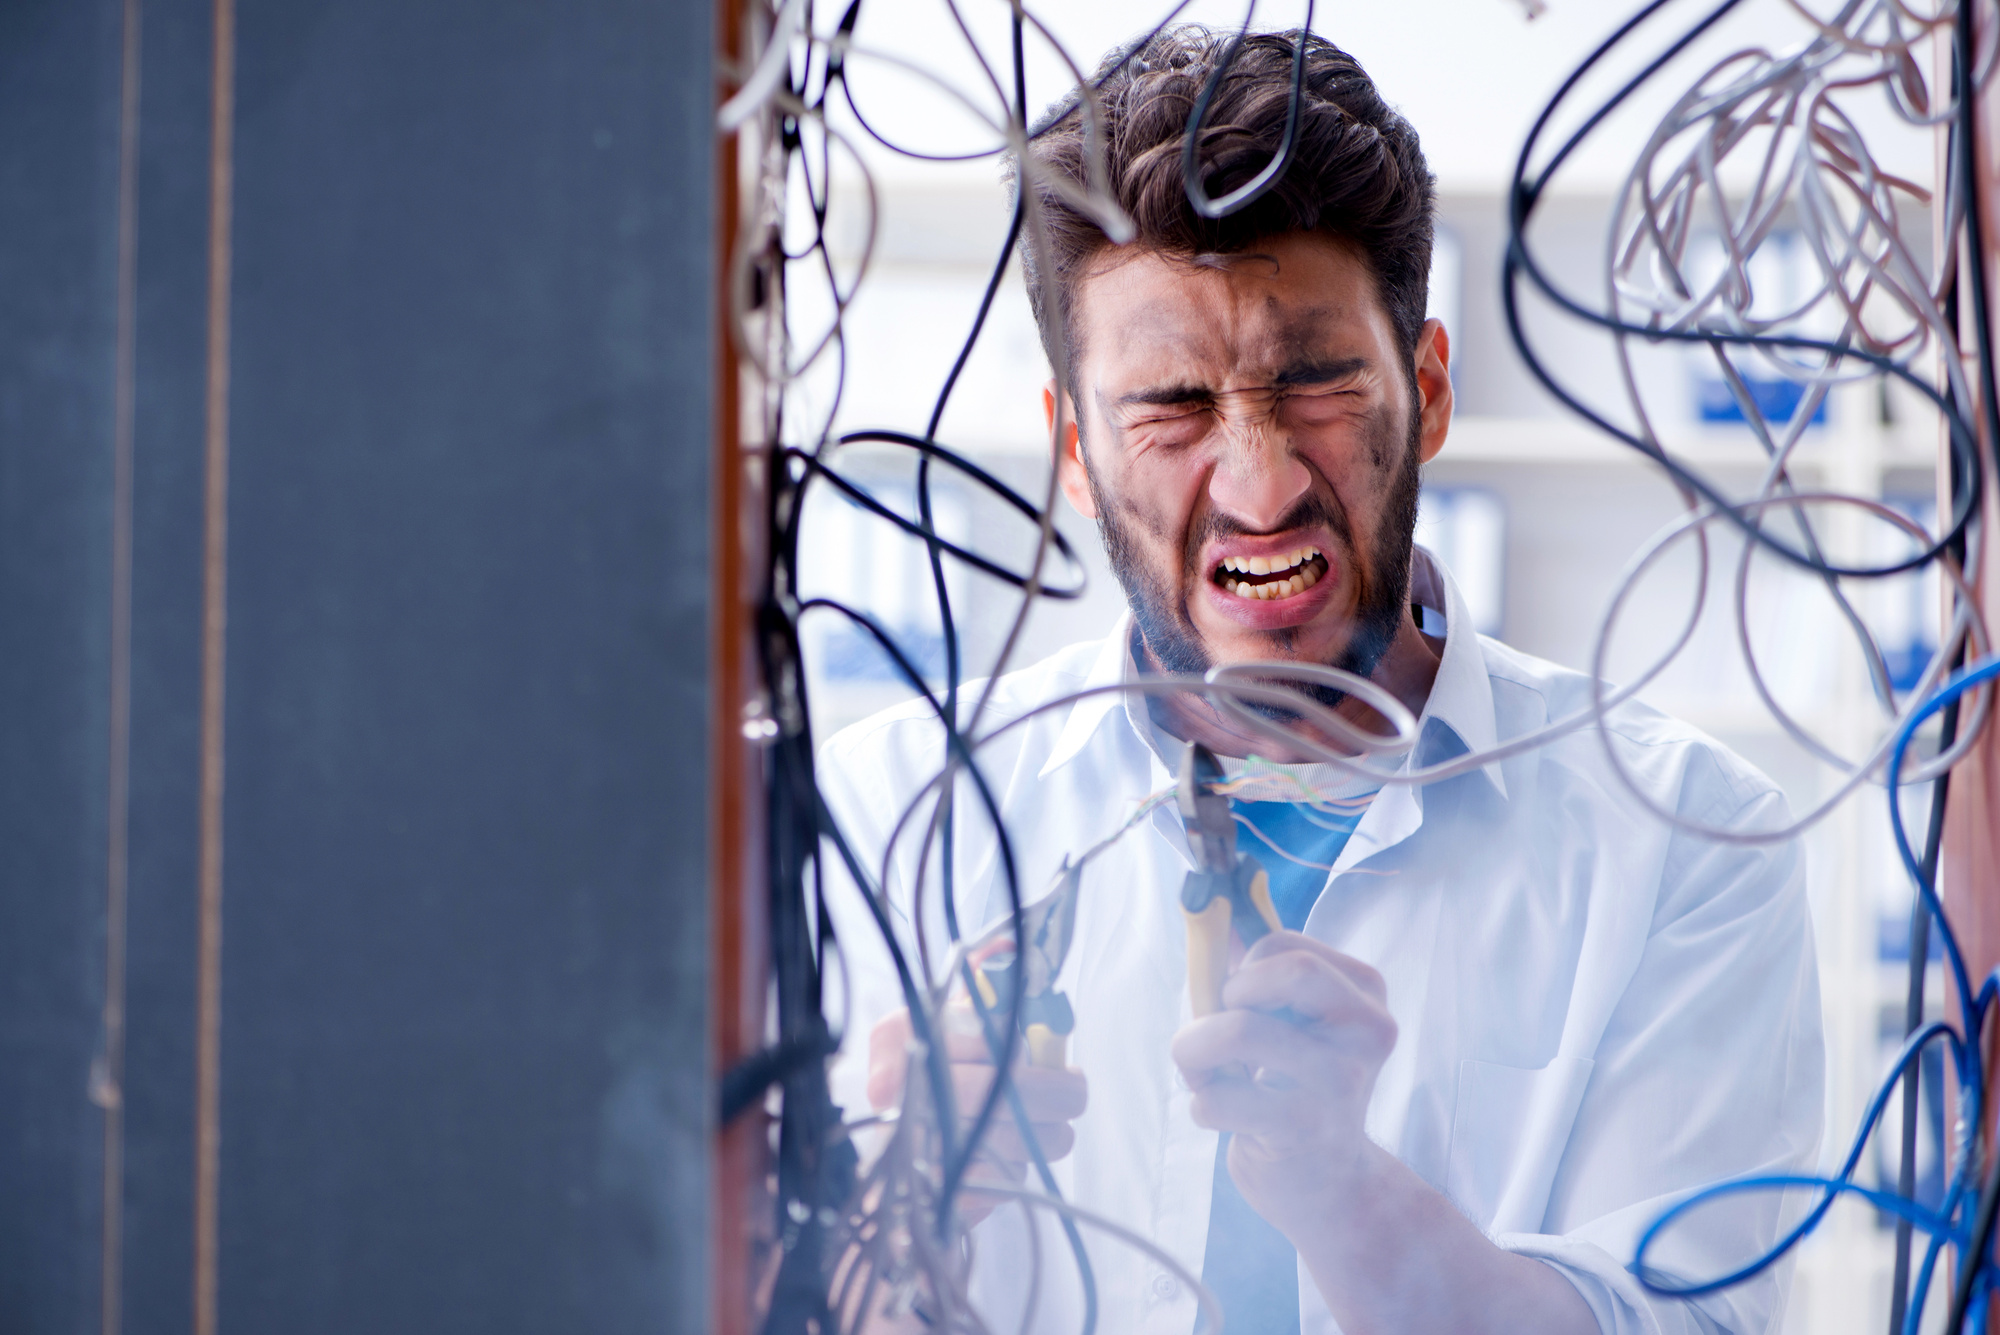 DIY Don'ts: Why You Should Never DIY Electrical Repairs